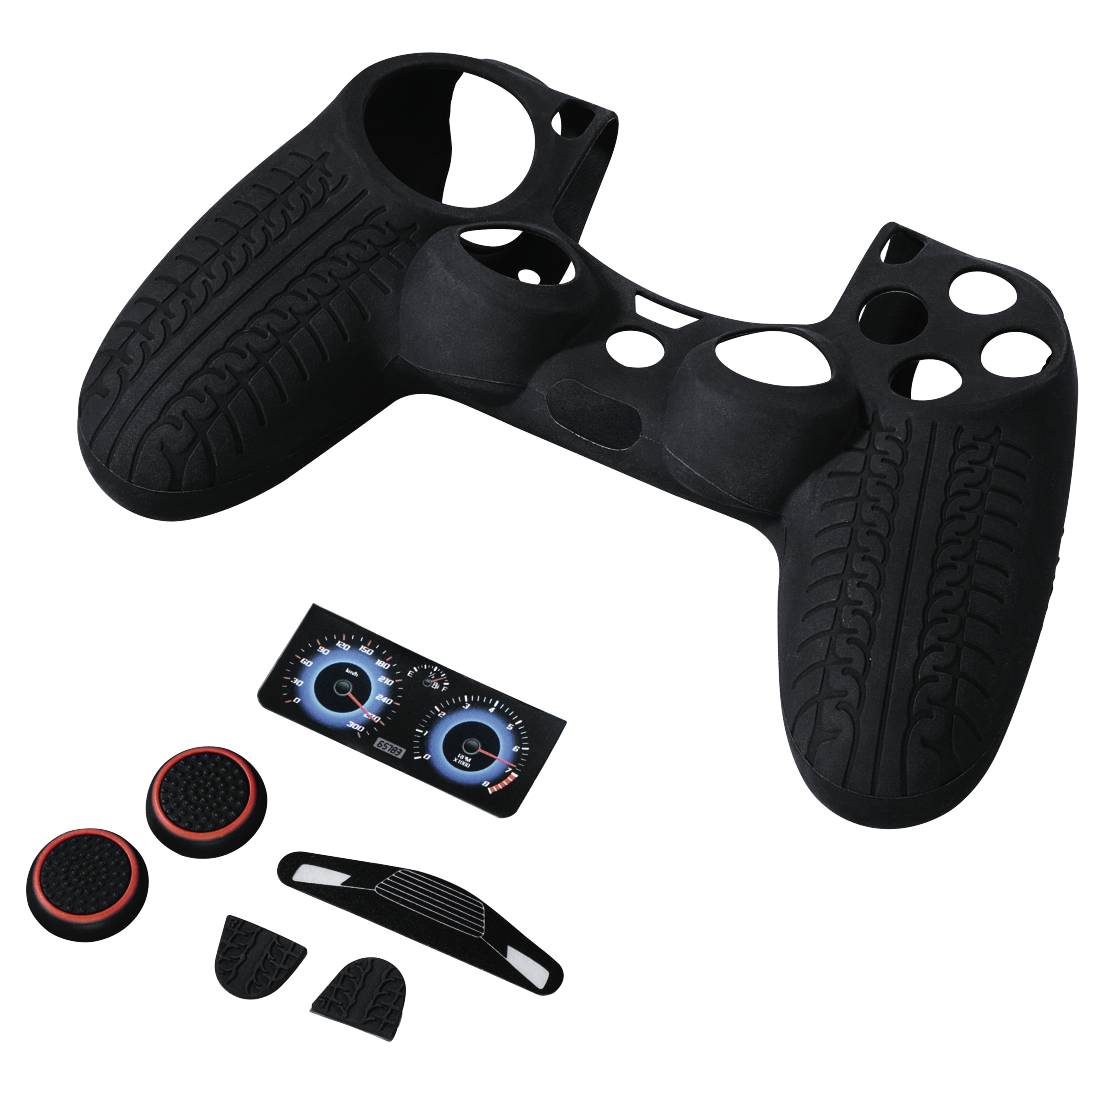 Hama Dualshock 4 Accessory Pack Racing 7 in 1 - 115447